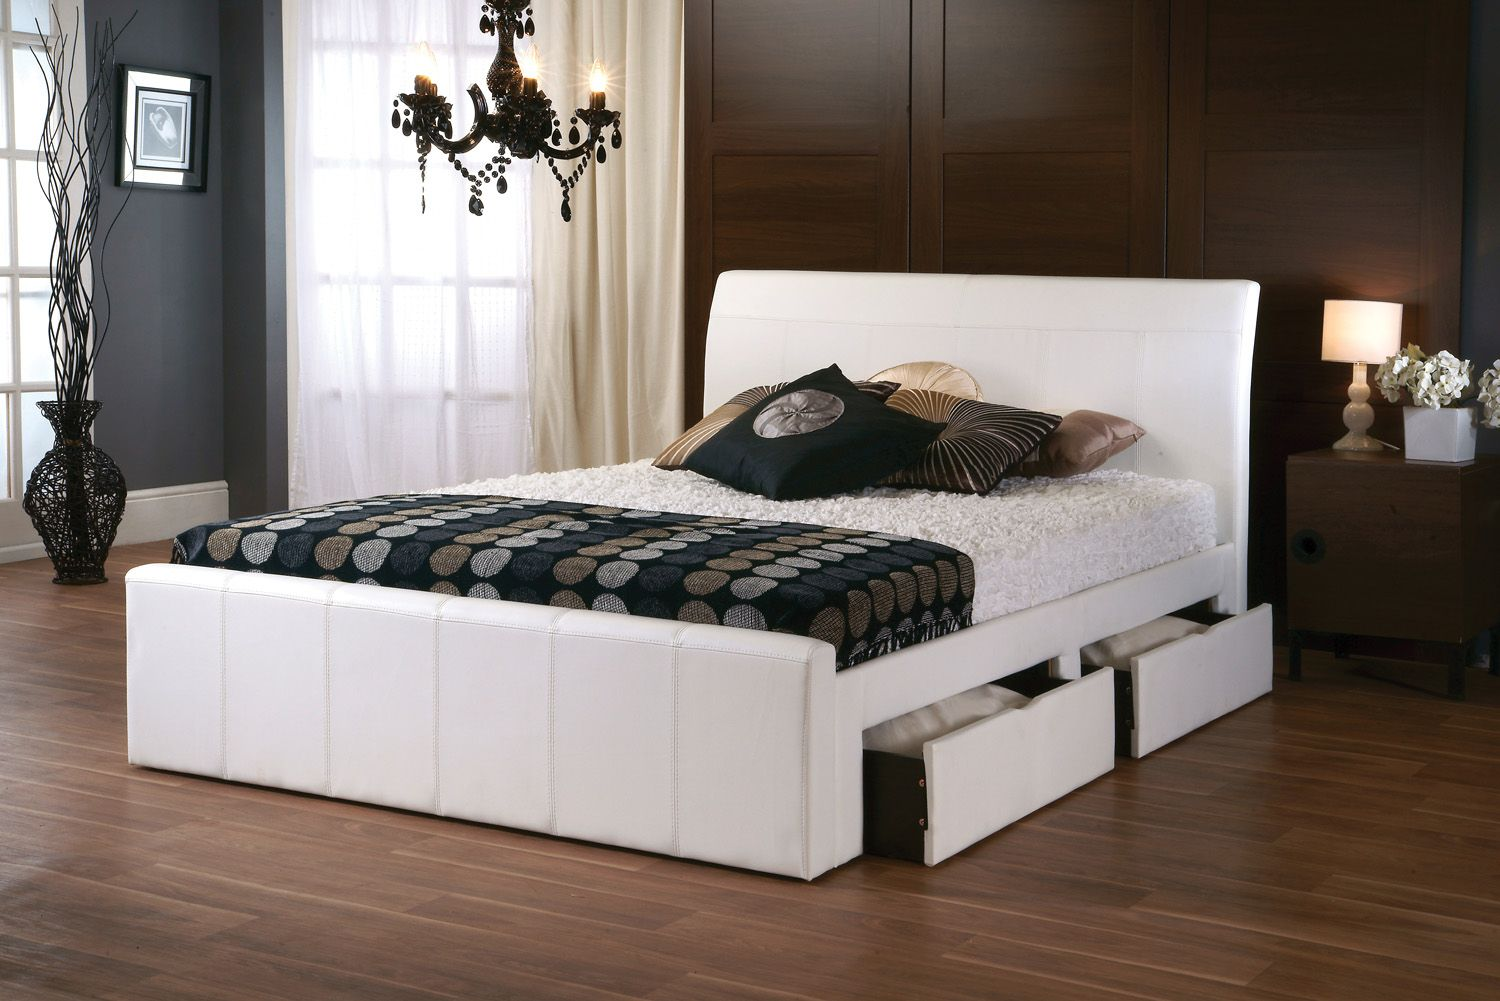 Surprising 5Ft New York White Faux Leather Bed Frame 479 95 Dailytribune Chair Design For Home Dailytribuneorg